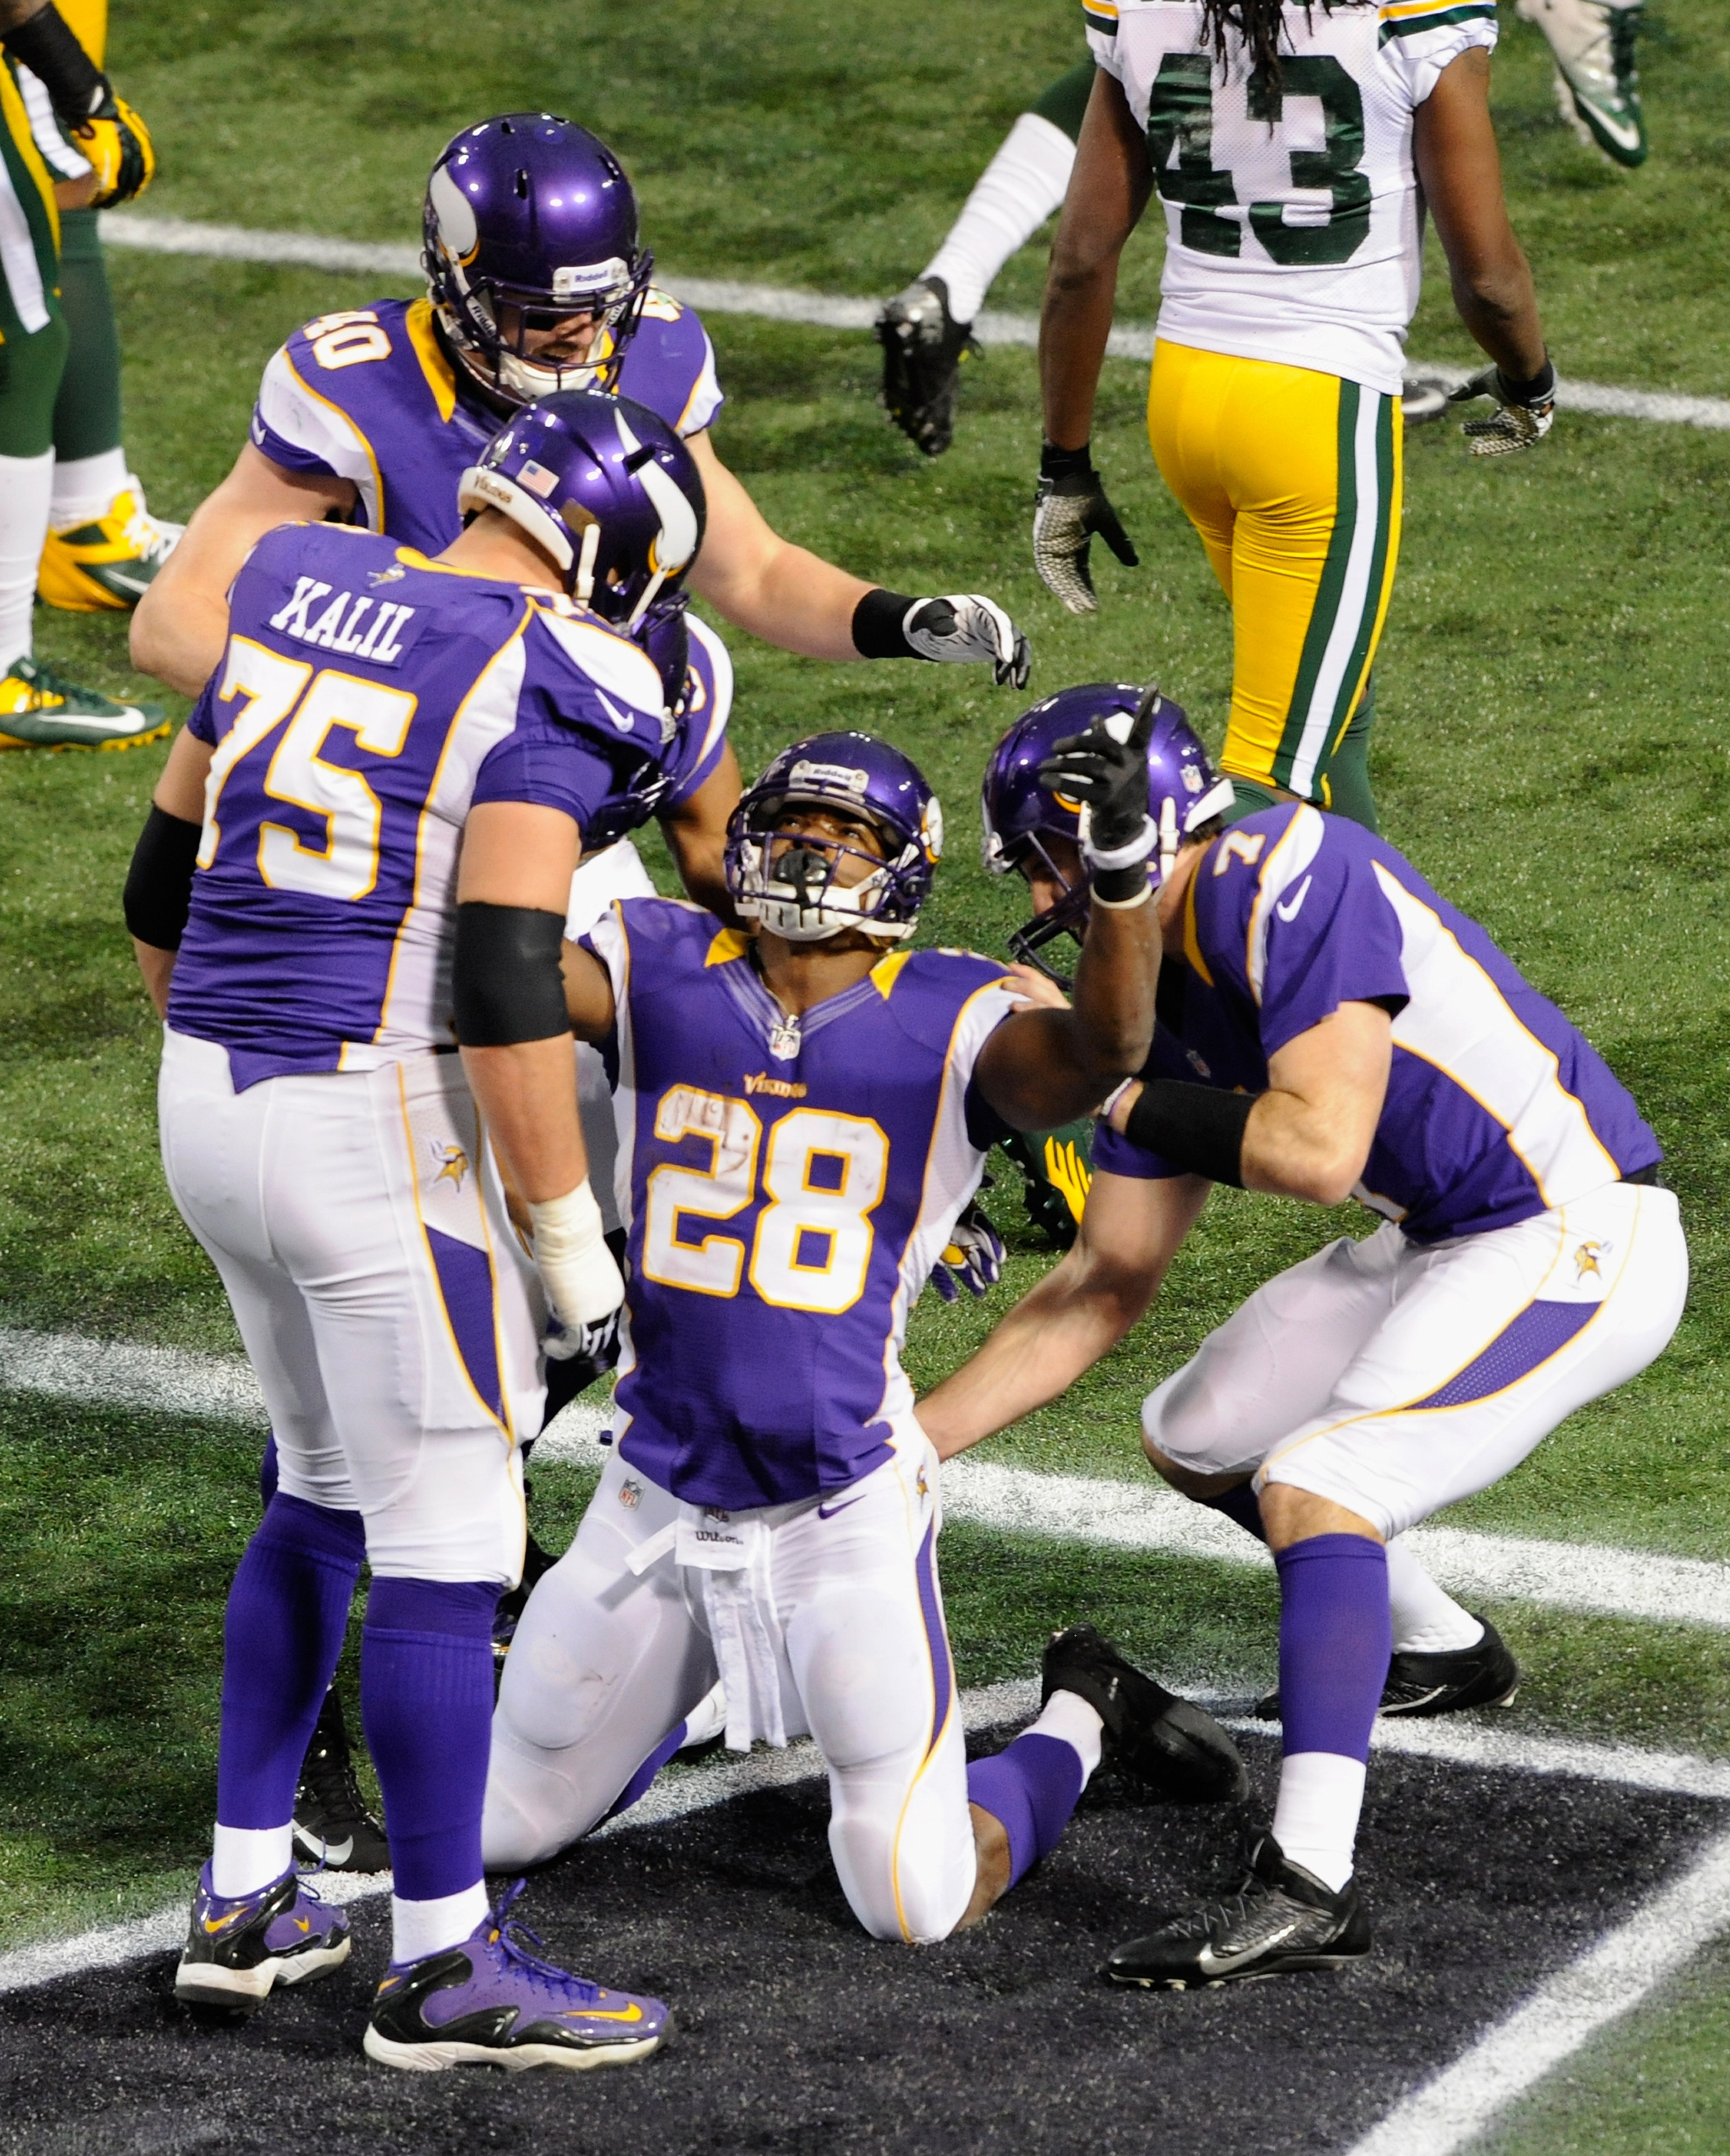 Things are looking up for the Vikings in 2013.